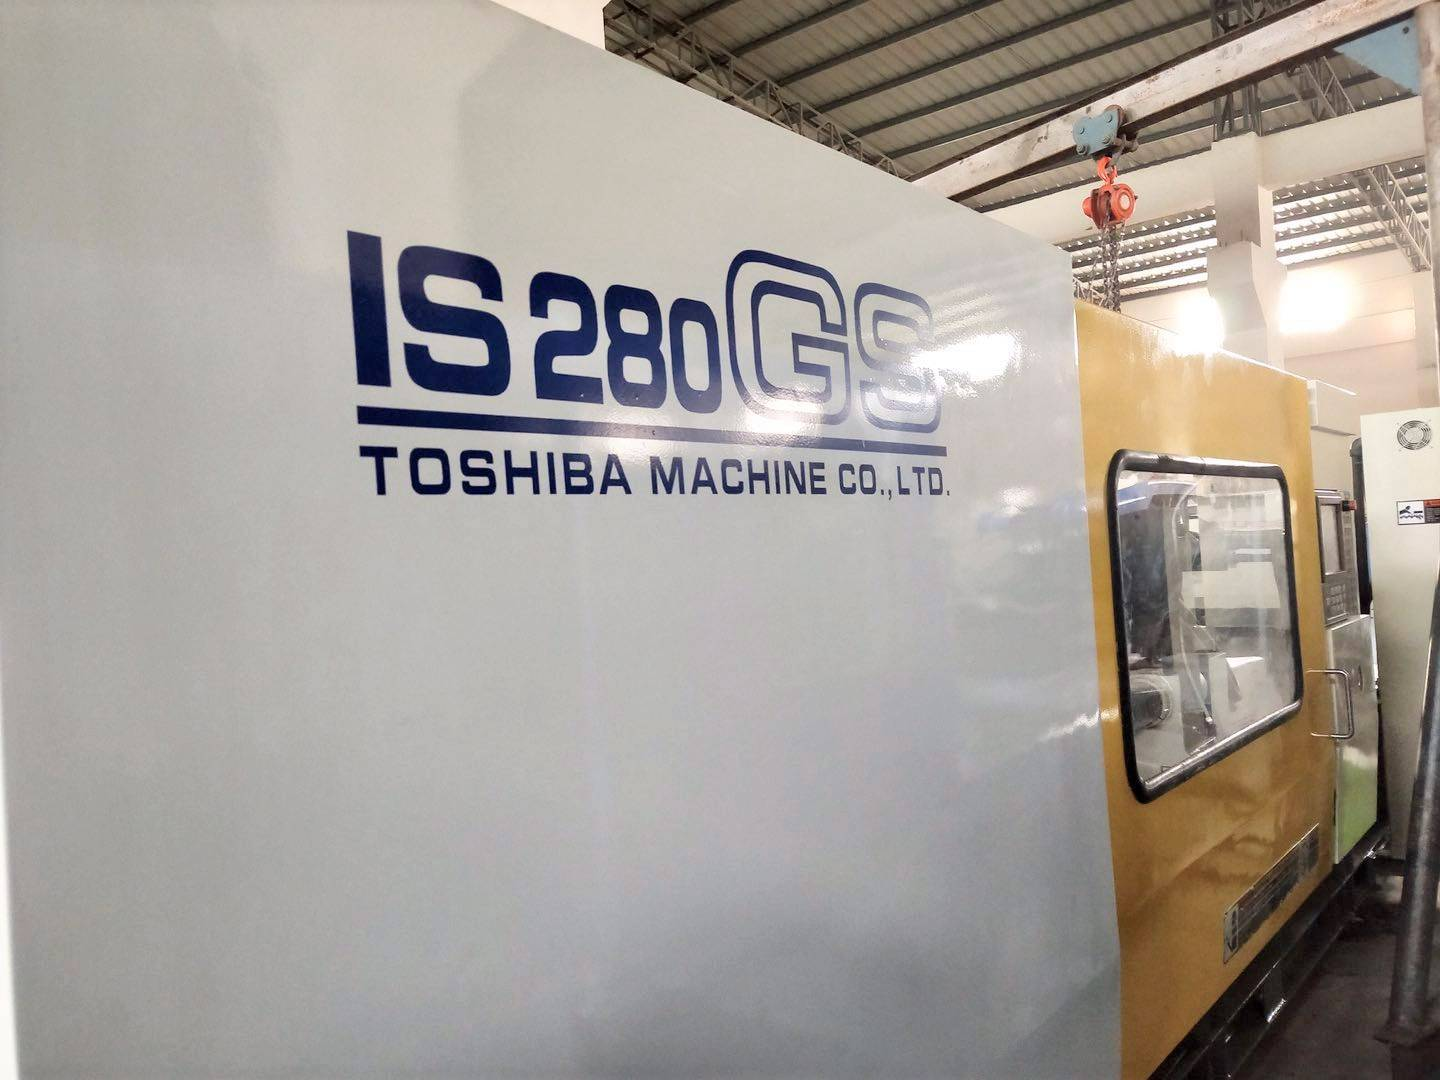 Toshiba 280t IS280GS (V21 Control) used plastic injection molding machine. Featured Image